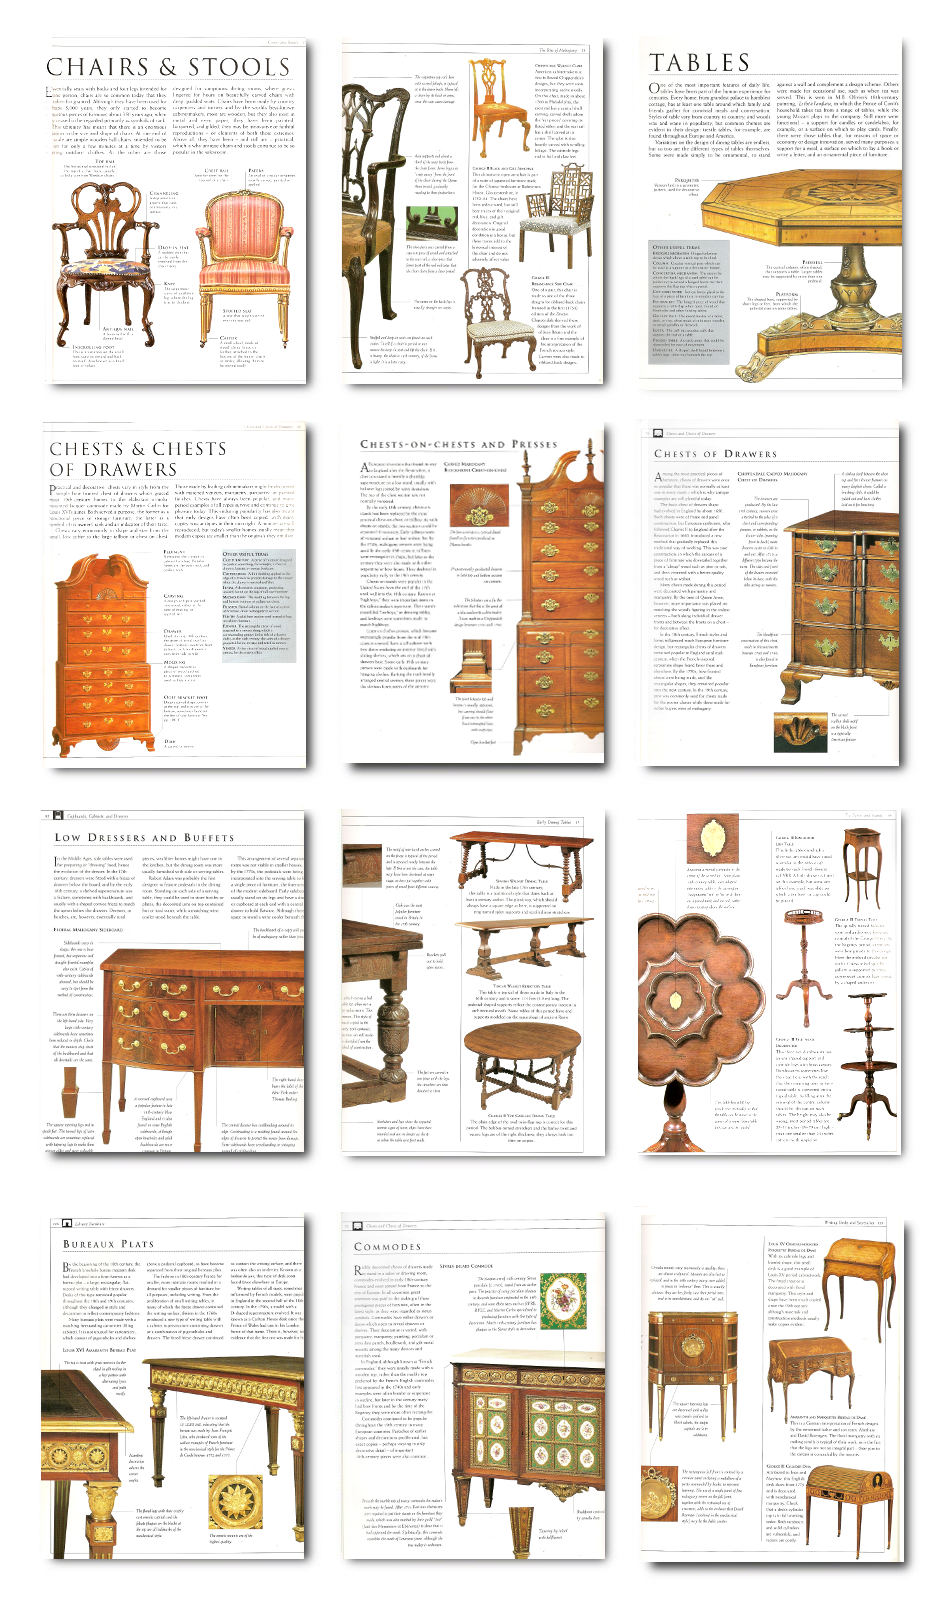 A Must-Have Antique Furniture Identification Guide -Antique Furniture Tom  Forrest - A Must-Have Antique Furniture Identification Guide -Antique